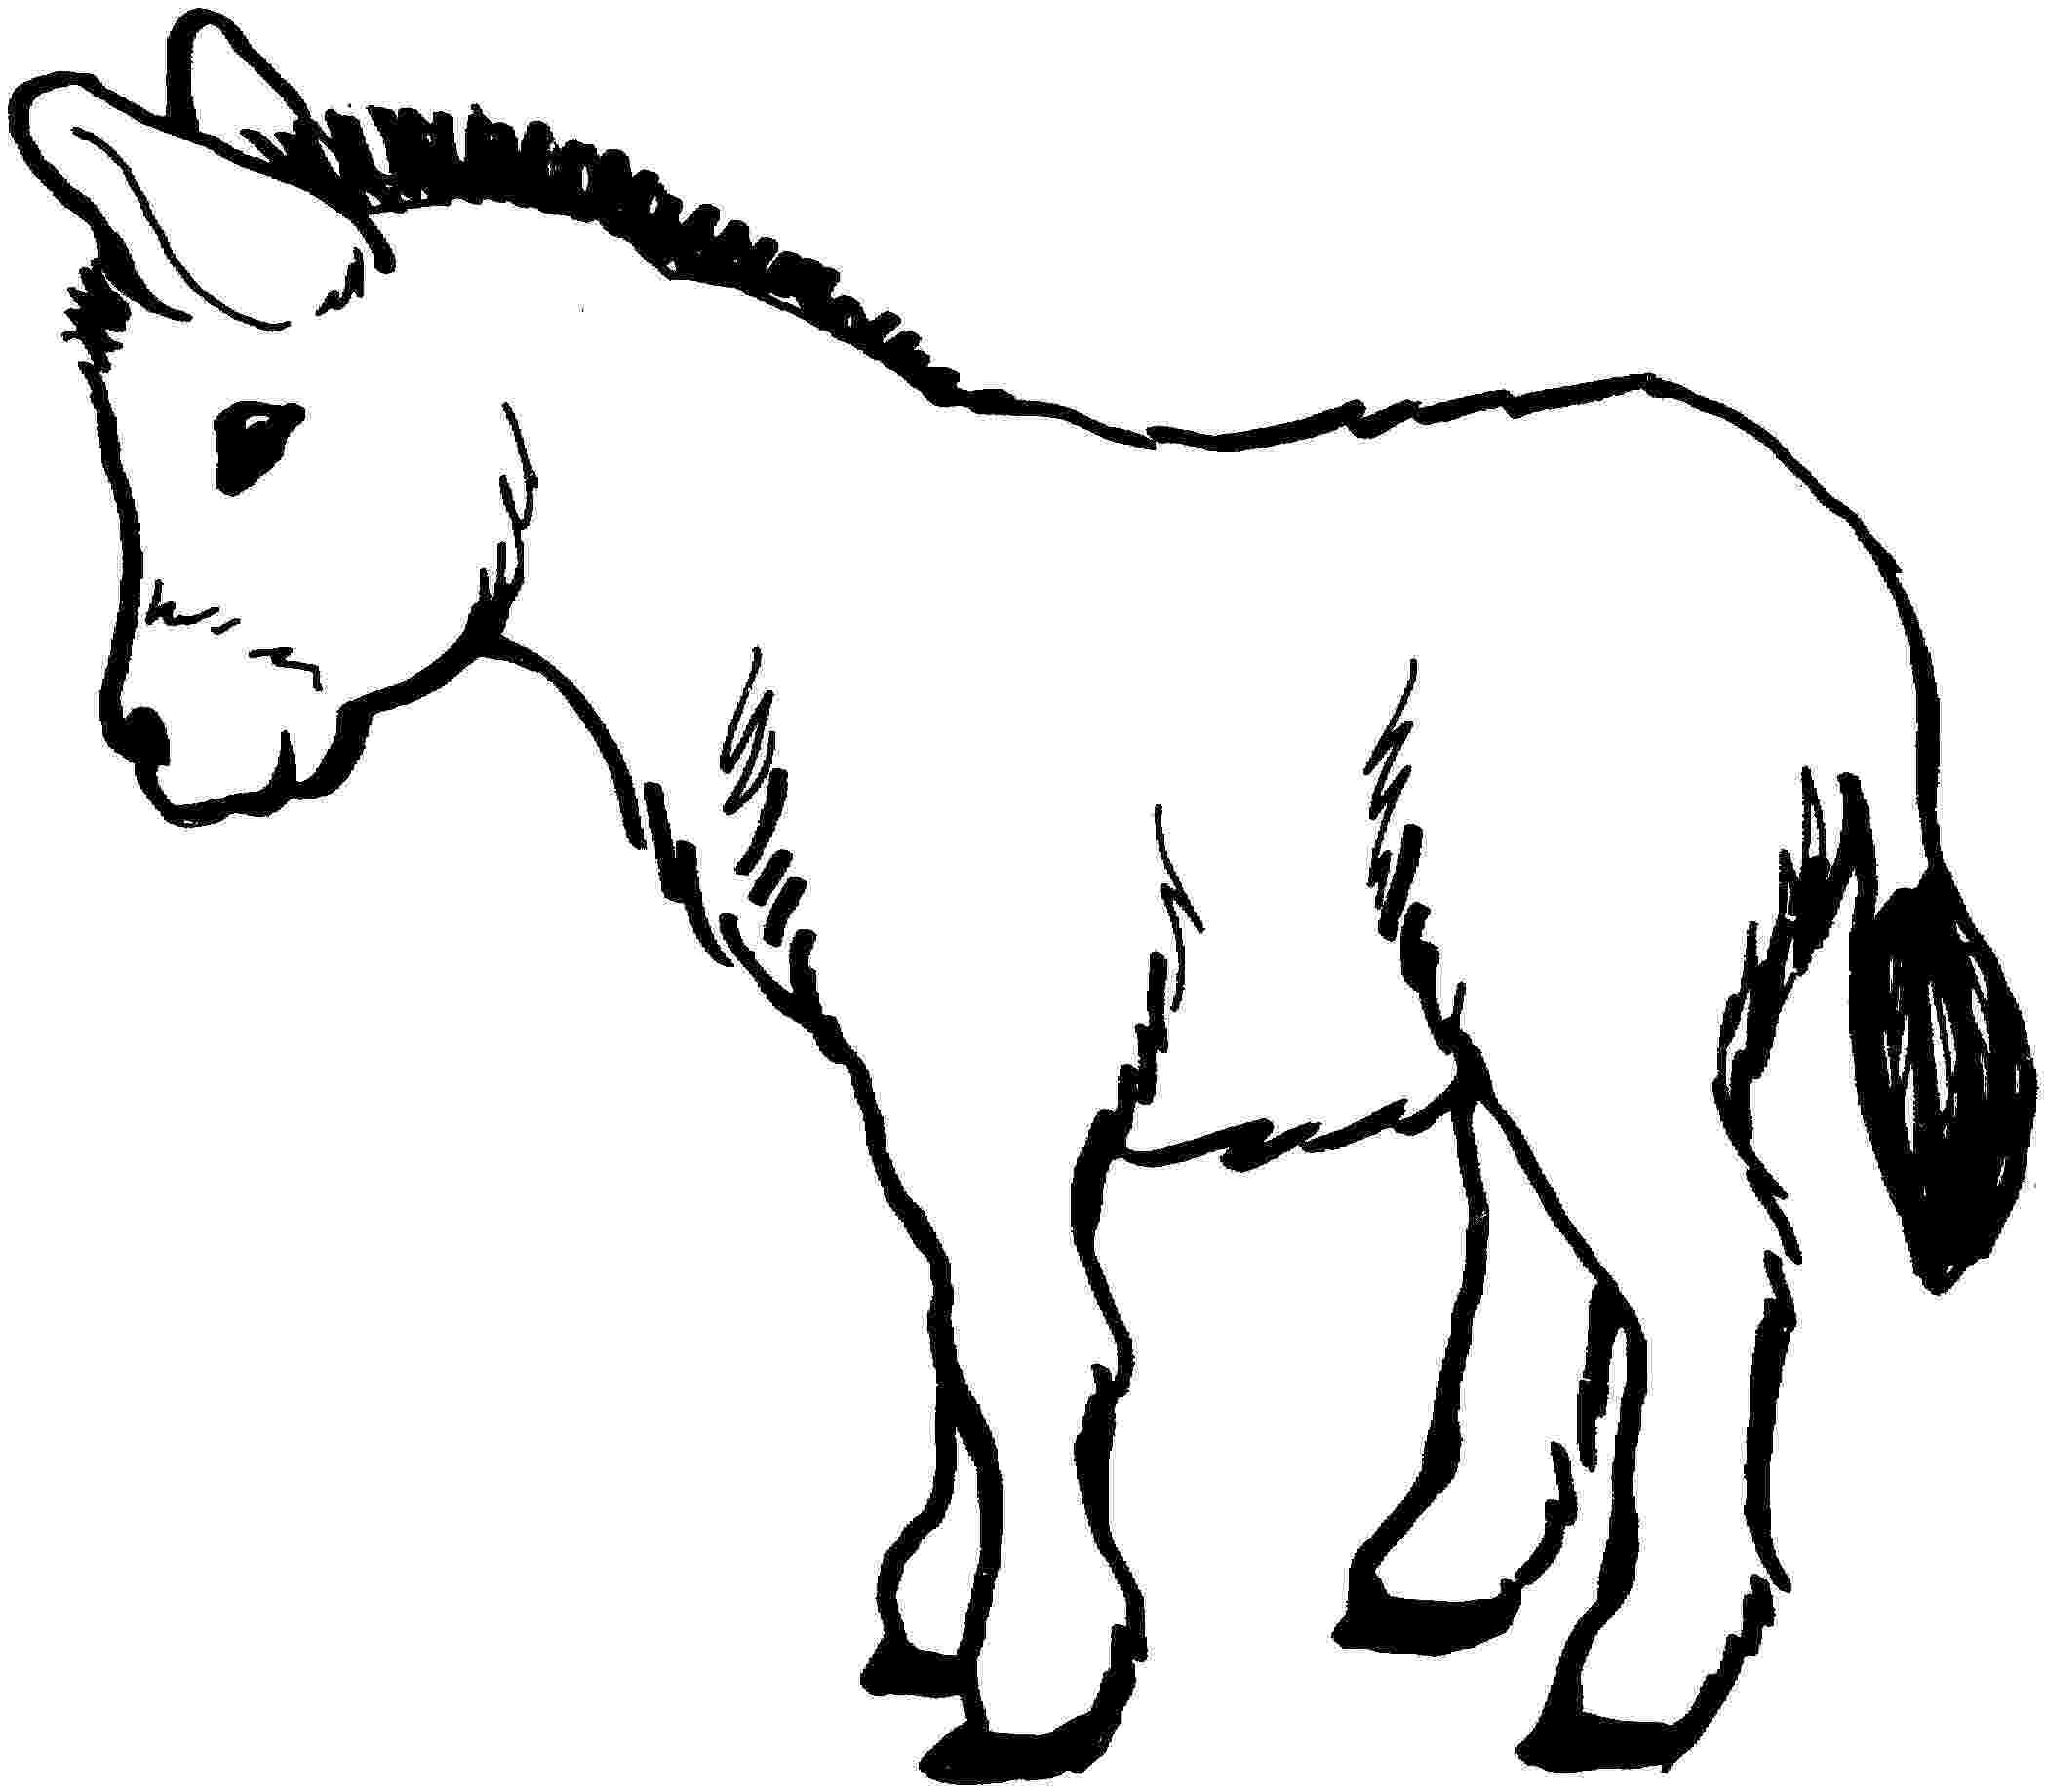 coloring pages donkey free printable donkey coloring pages for kids coloring donkey pages